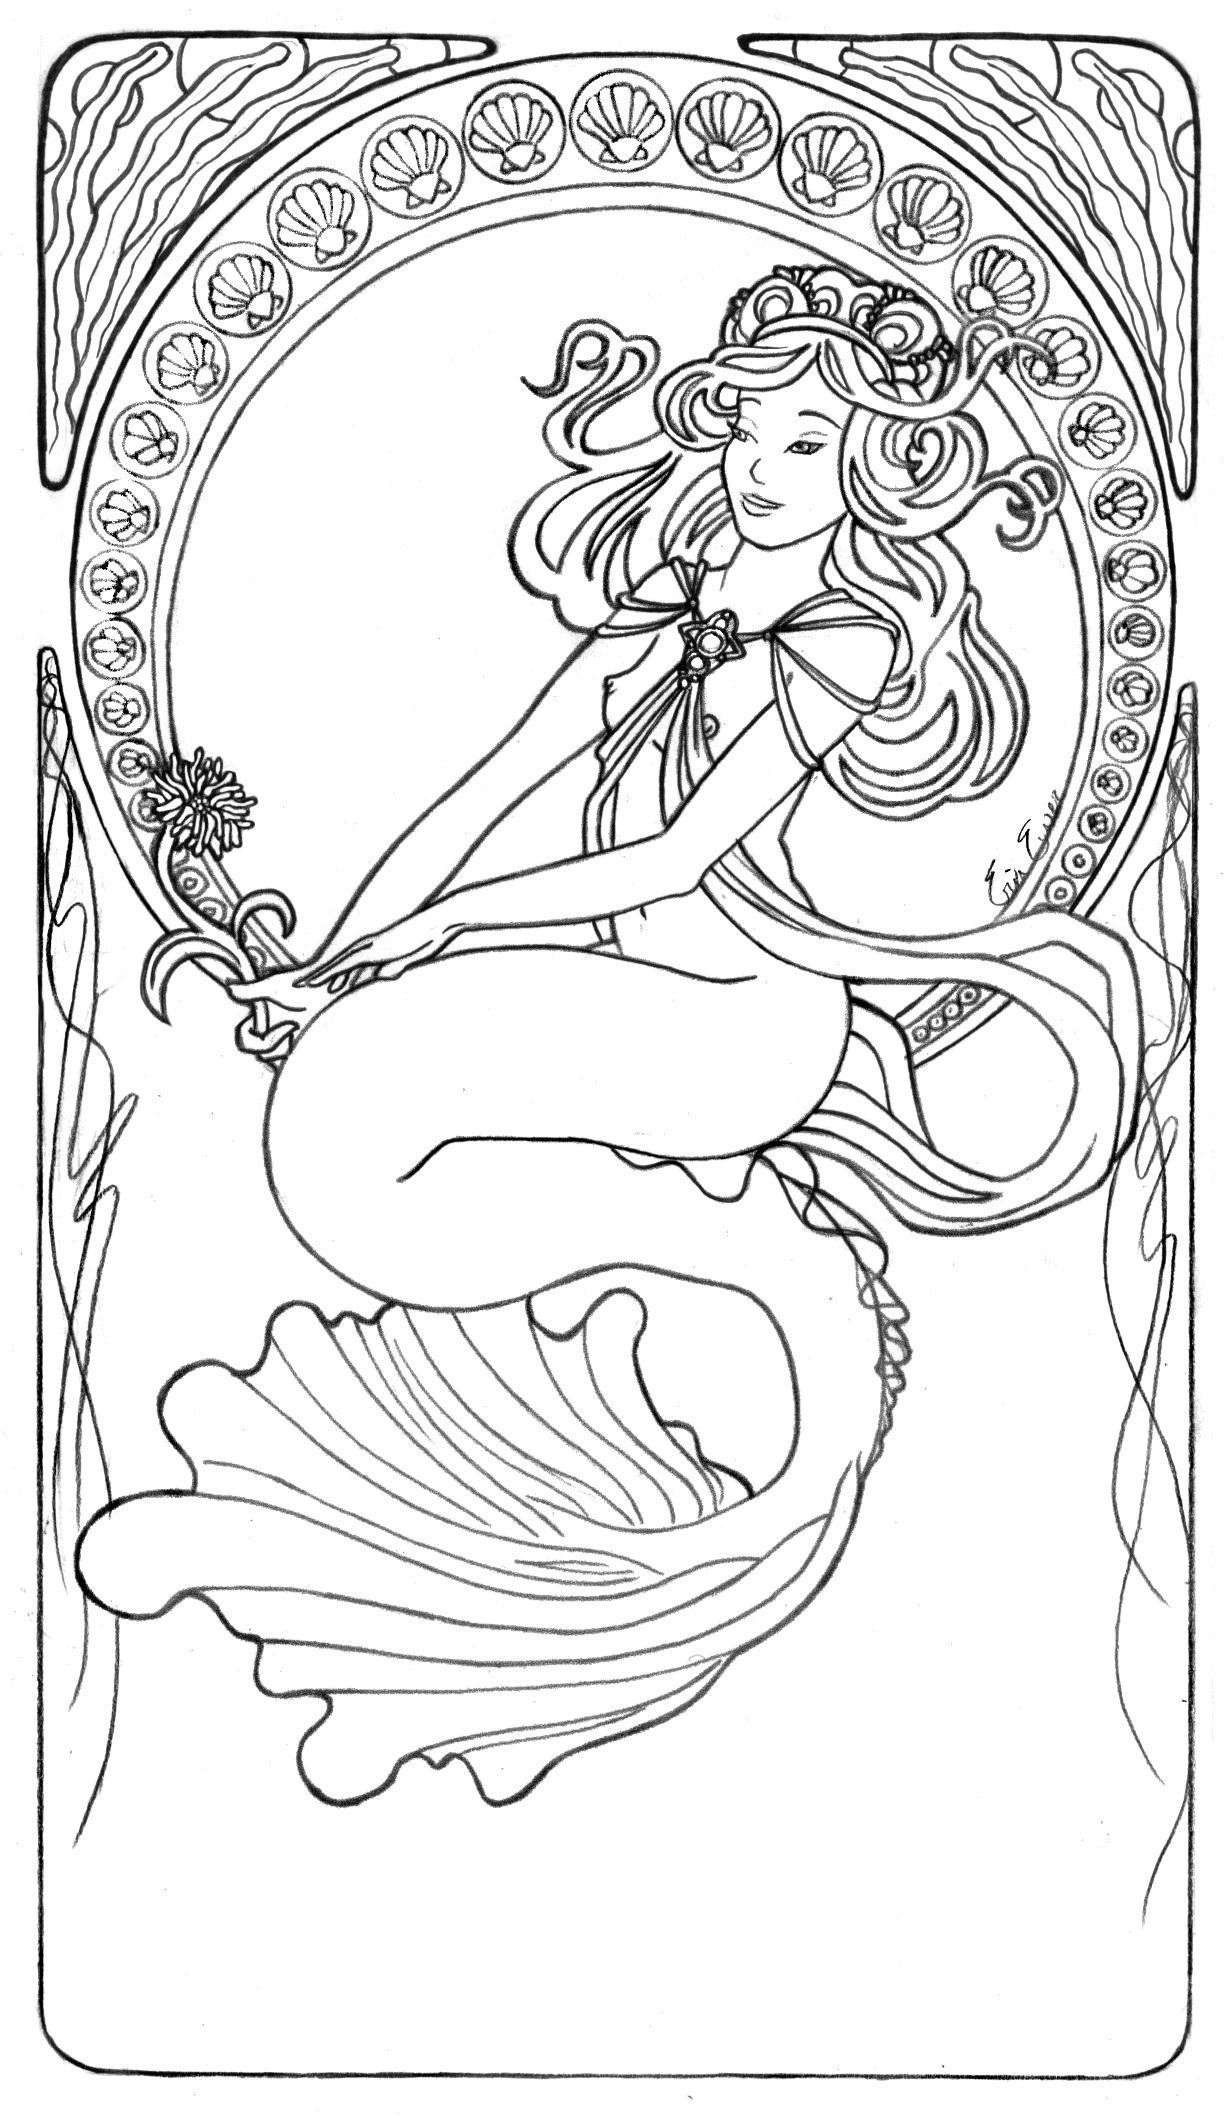 1000 images about coloring pages mermaids and fishies on